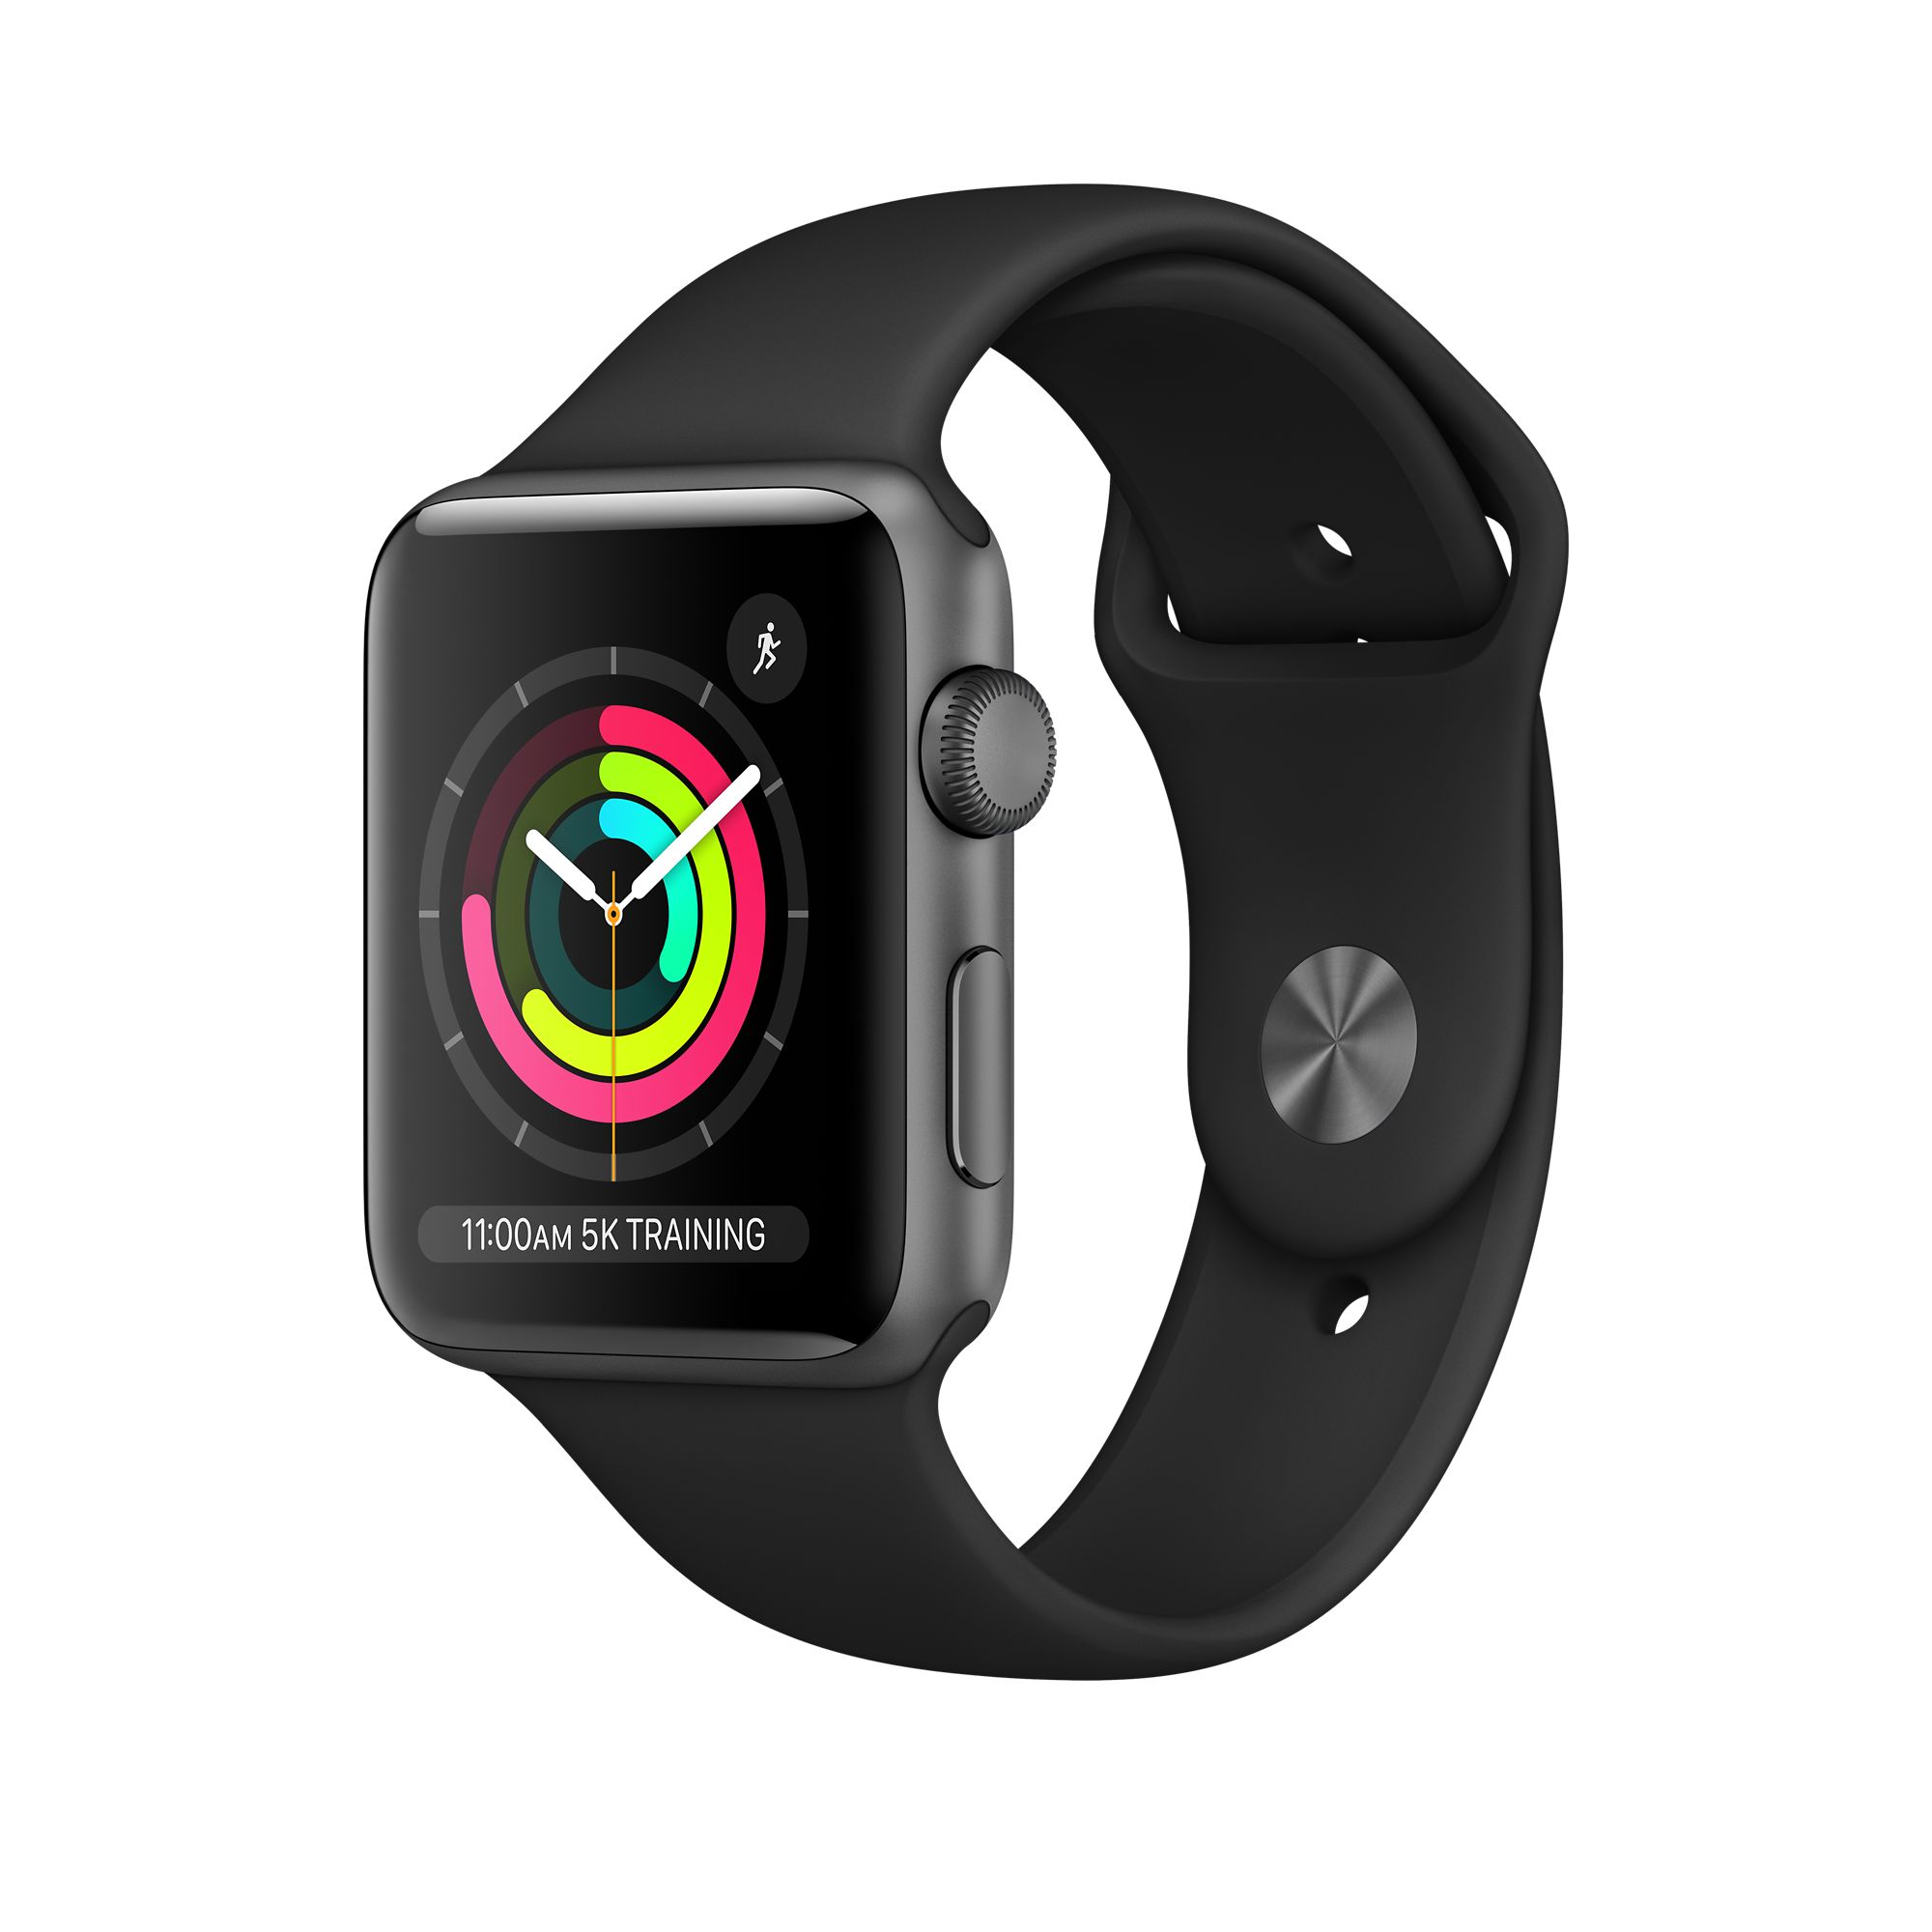 sneakers for cheap ddc19 d5d90 Apple Watch Series 3 GPS, 42mm Space Gray Aluminum Case with Black Sport  Band